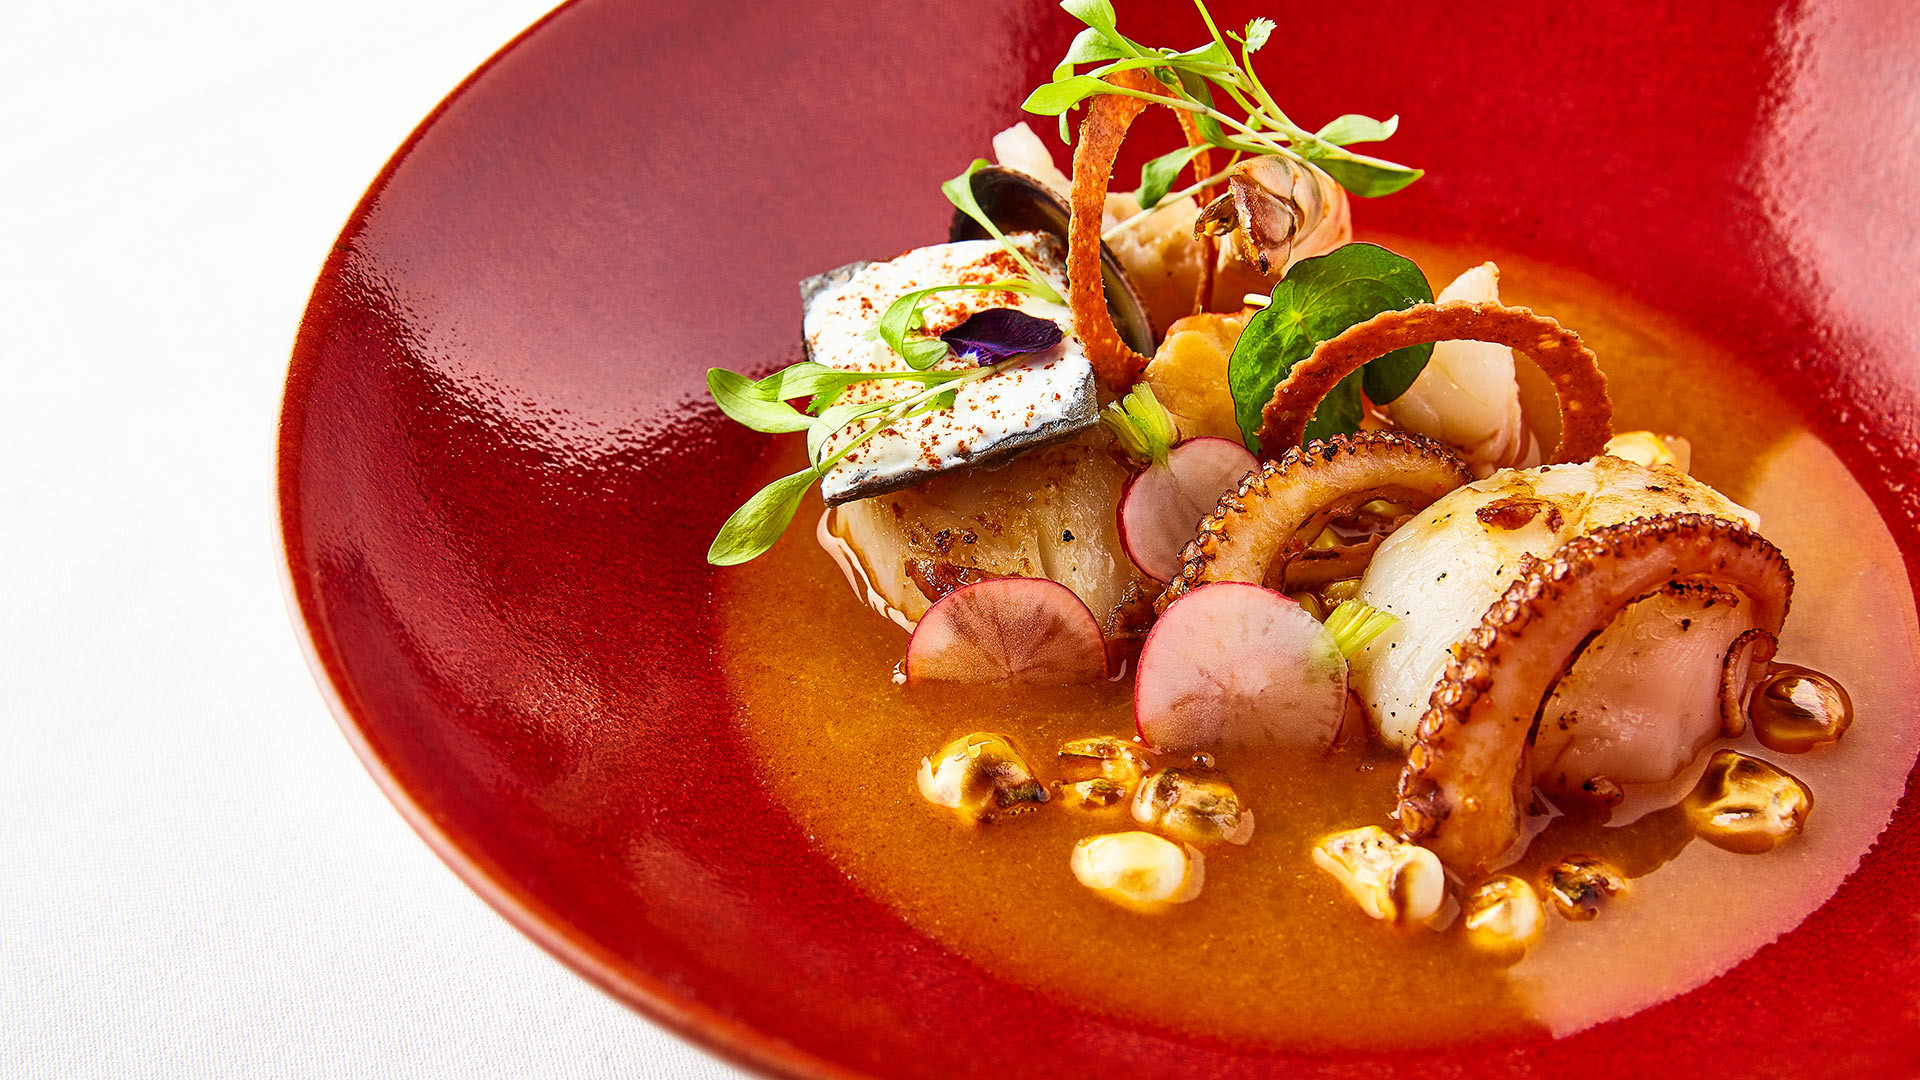 Martha Ortiz, Ella Canta: Seafood and lobster pozole